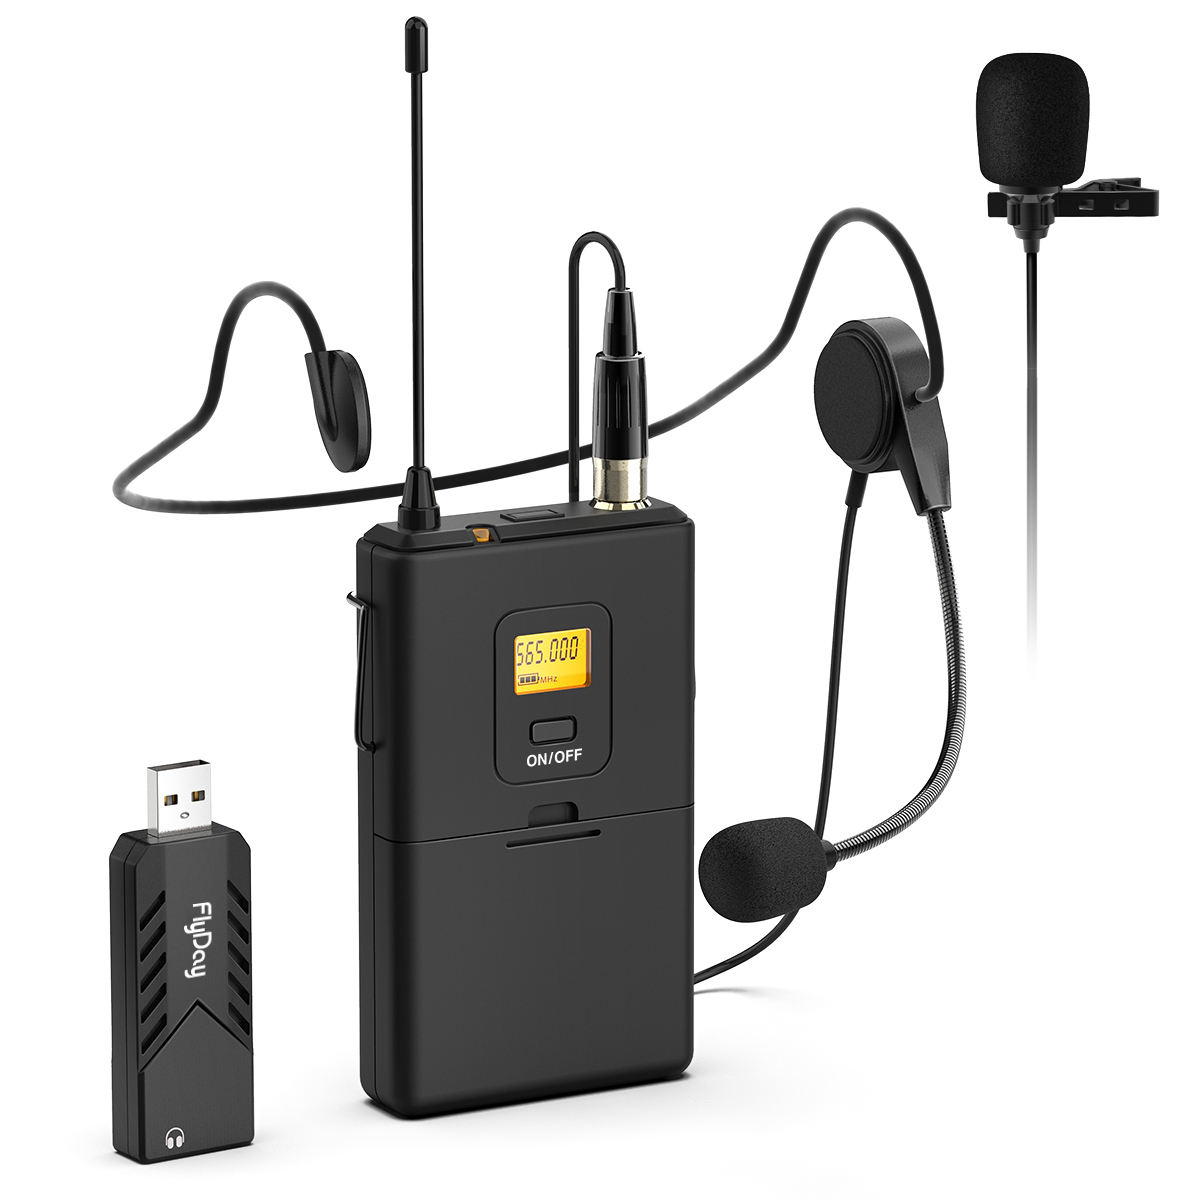 OEM USB Wireless Microphone System for PC Headset & Clip Lavalier Lapel Mic for Live Broadcast Recording K031B